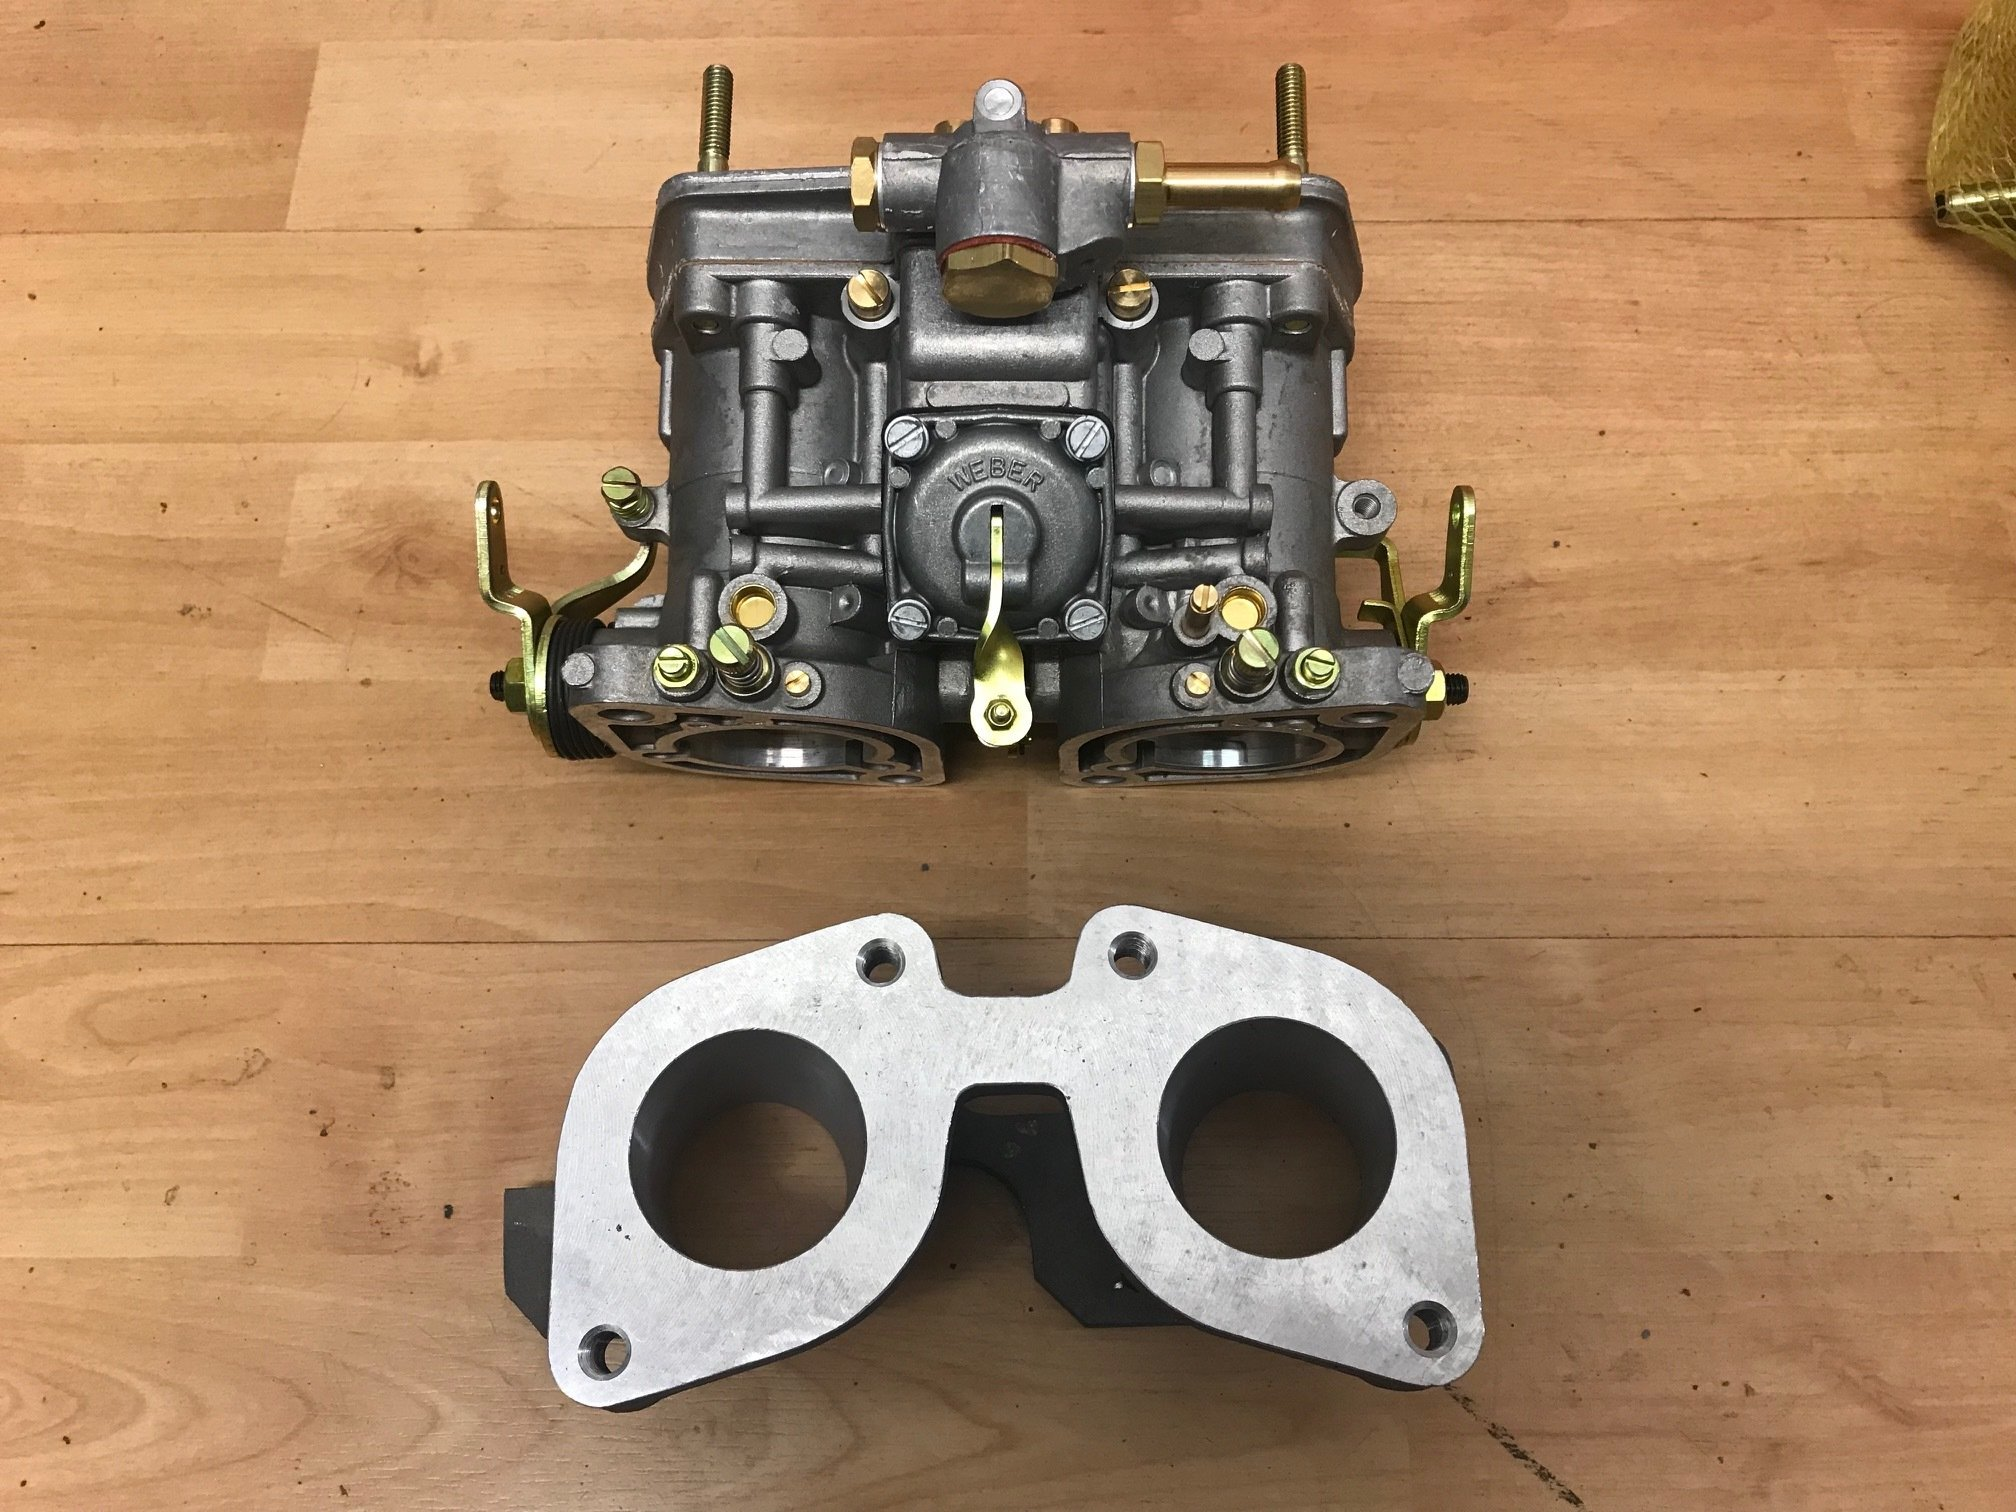 Jaguar 5.3 V12 Weber IDF carburettor and manifold kit